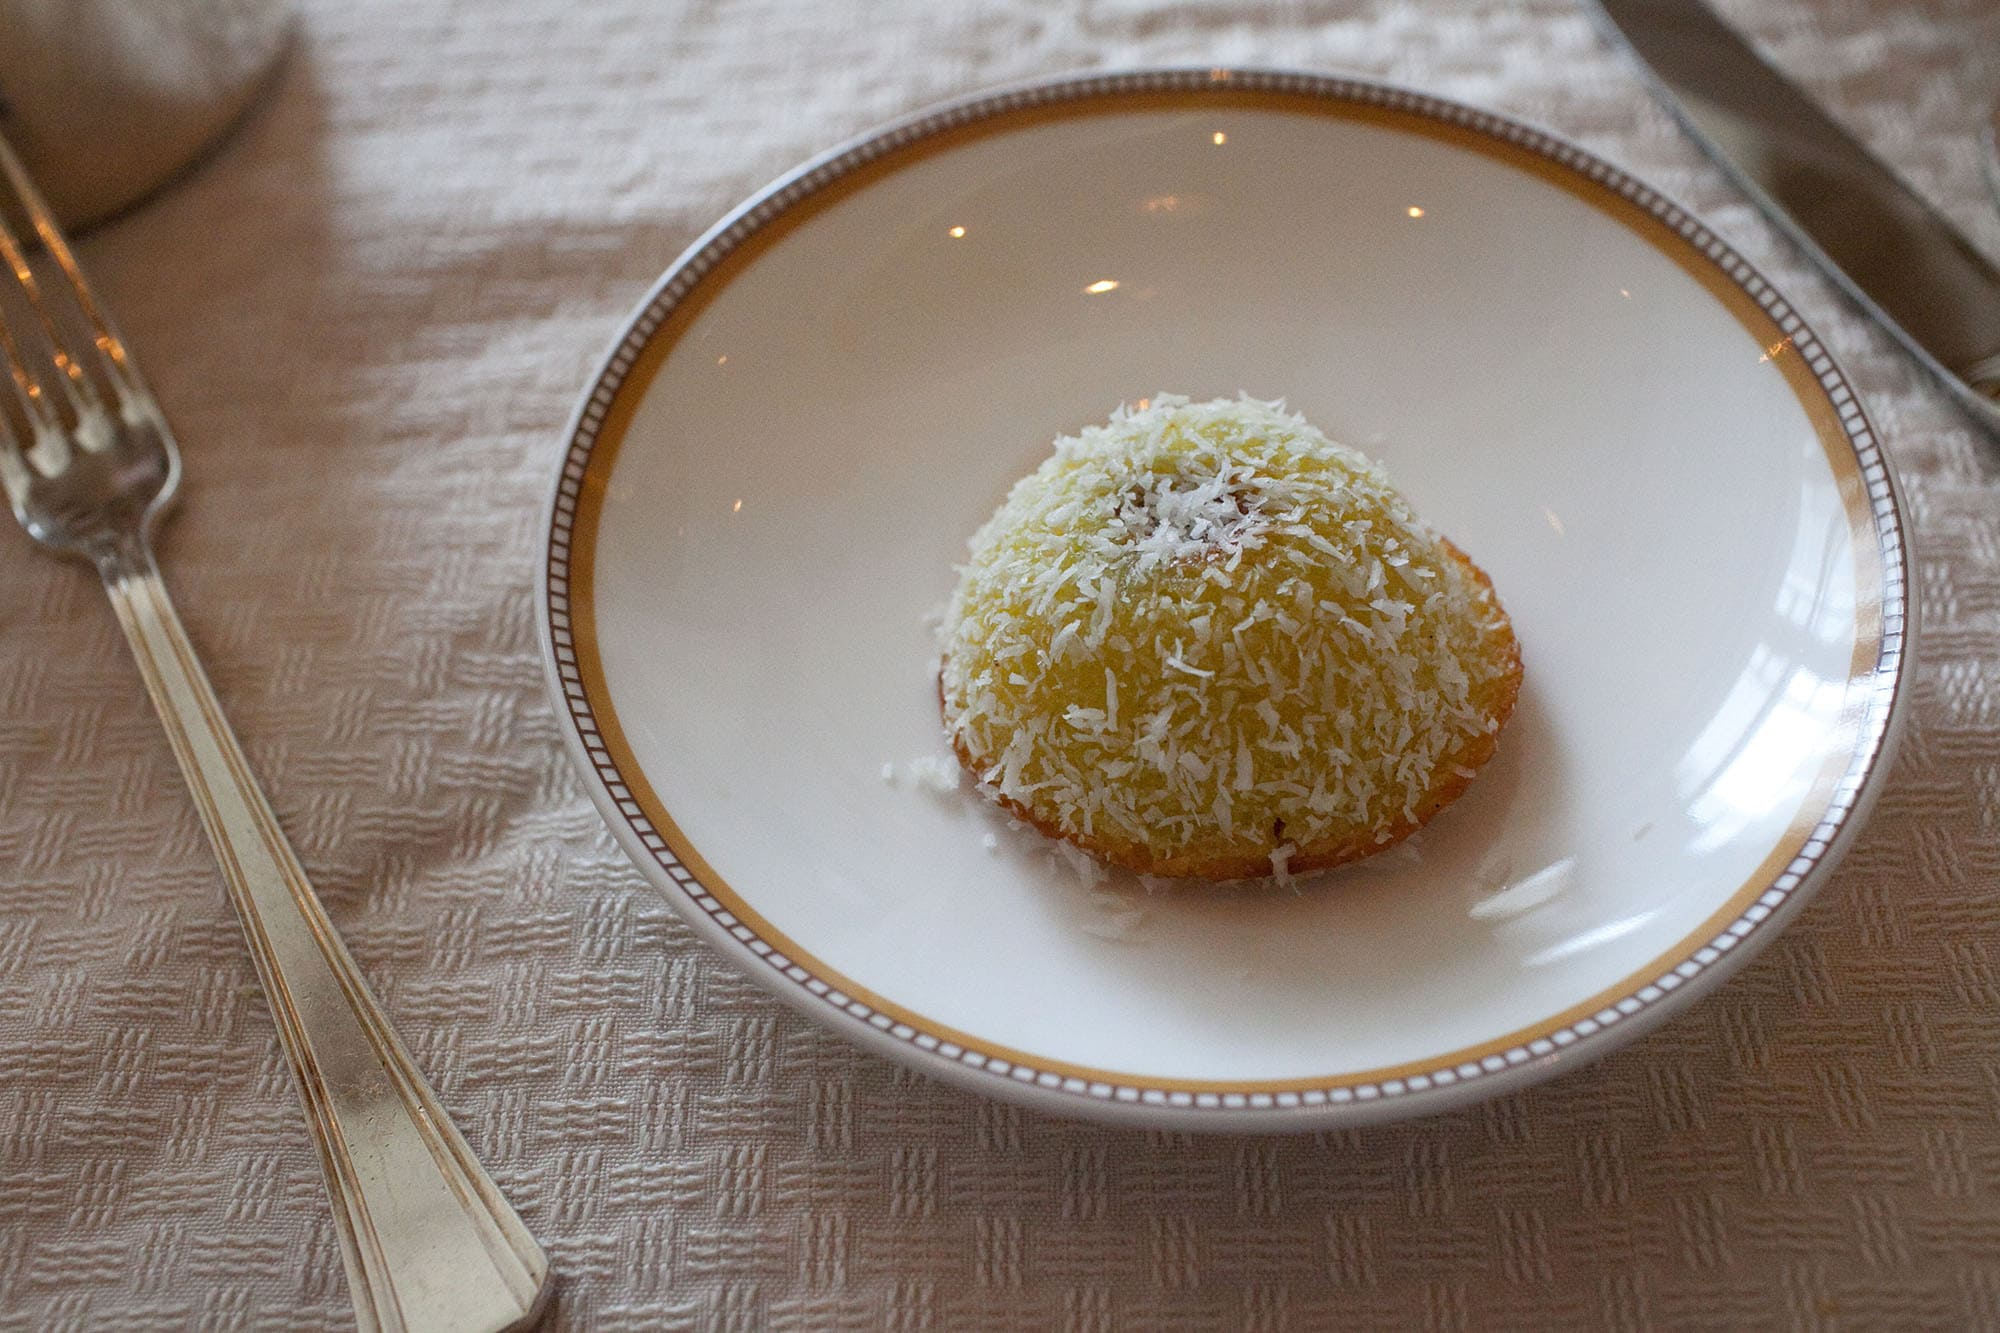 Chocolate filled coconut cake at the Lobby at The Peninsula in Chicago, Illinois.